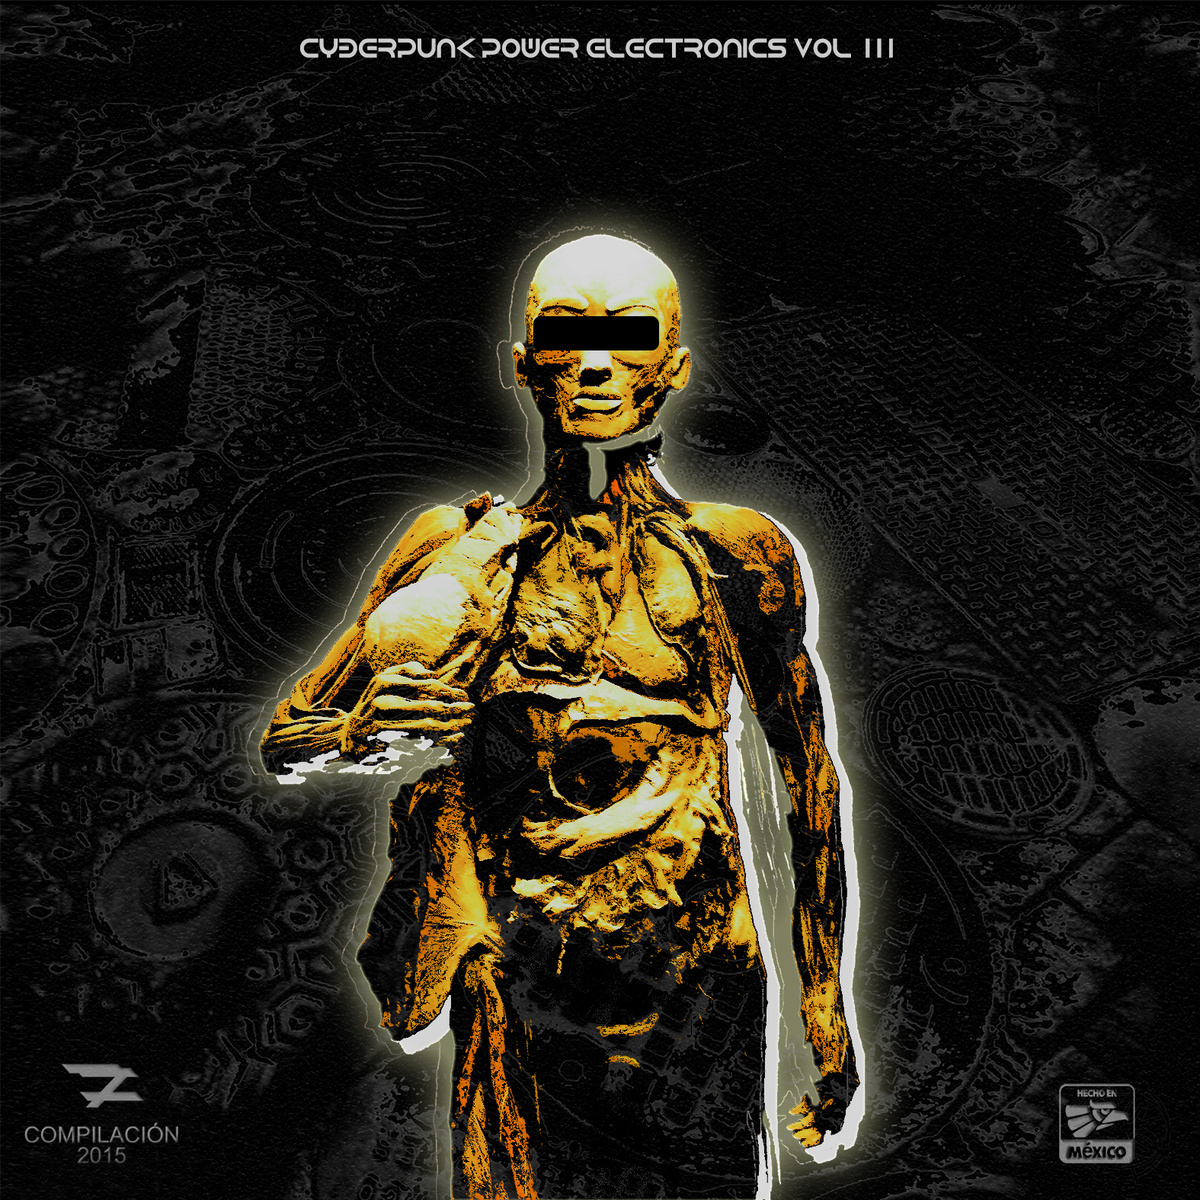 Zoonosis Cyberpunk Power Electronics Vol III